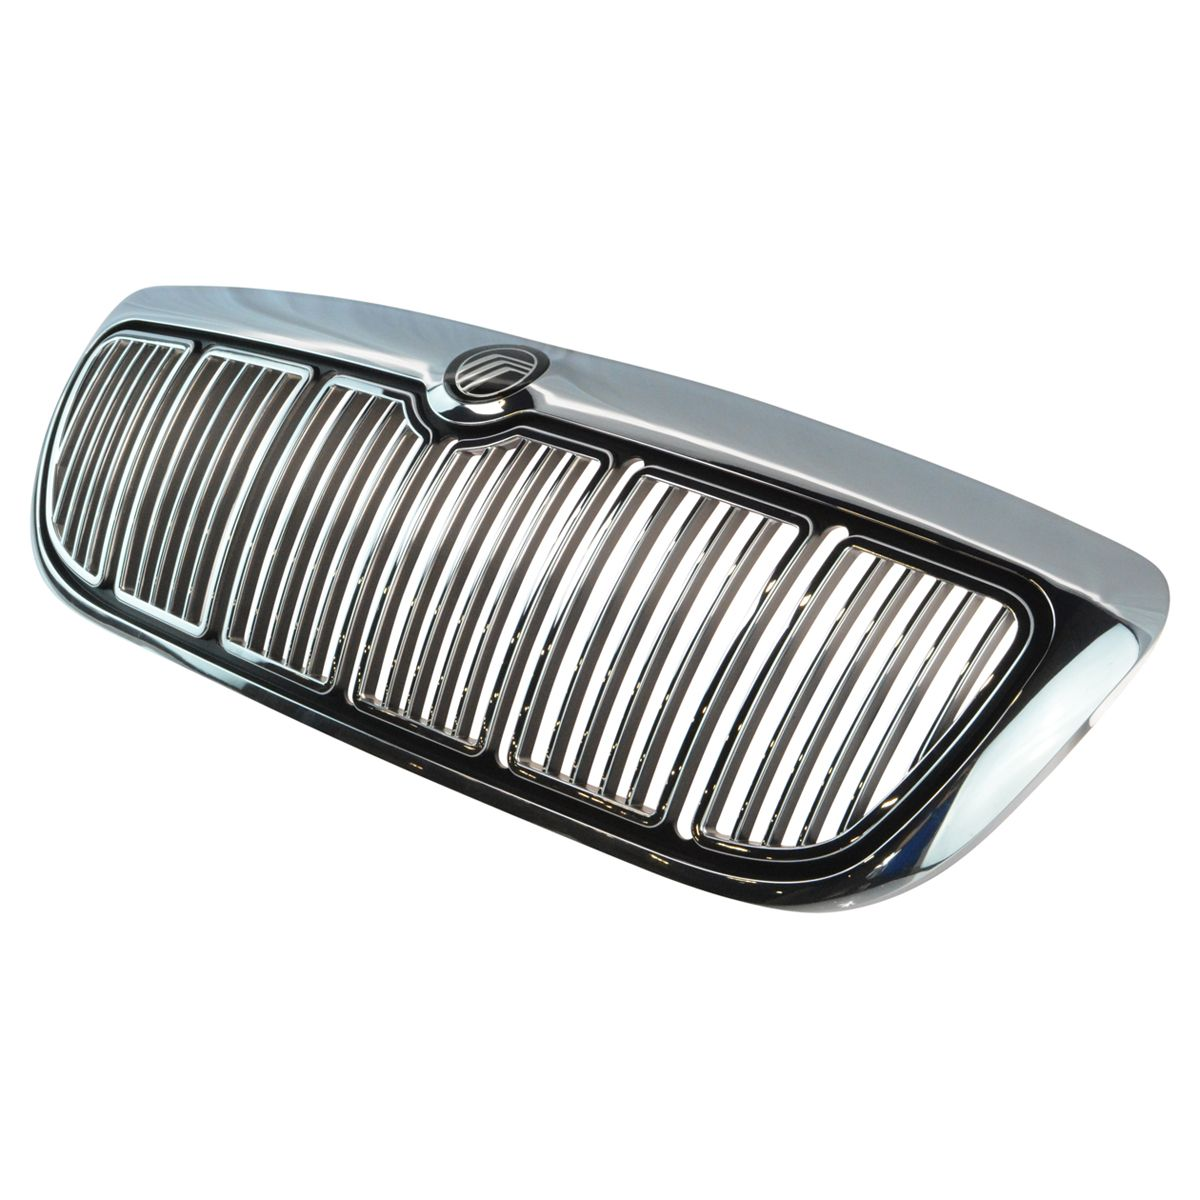 OEM Chrome Grille Assembly w/ Emblem Direct Fit for 98-02 Mercury Grand Marquis